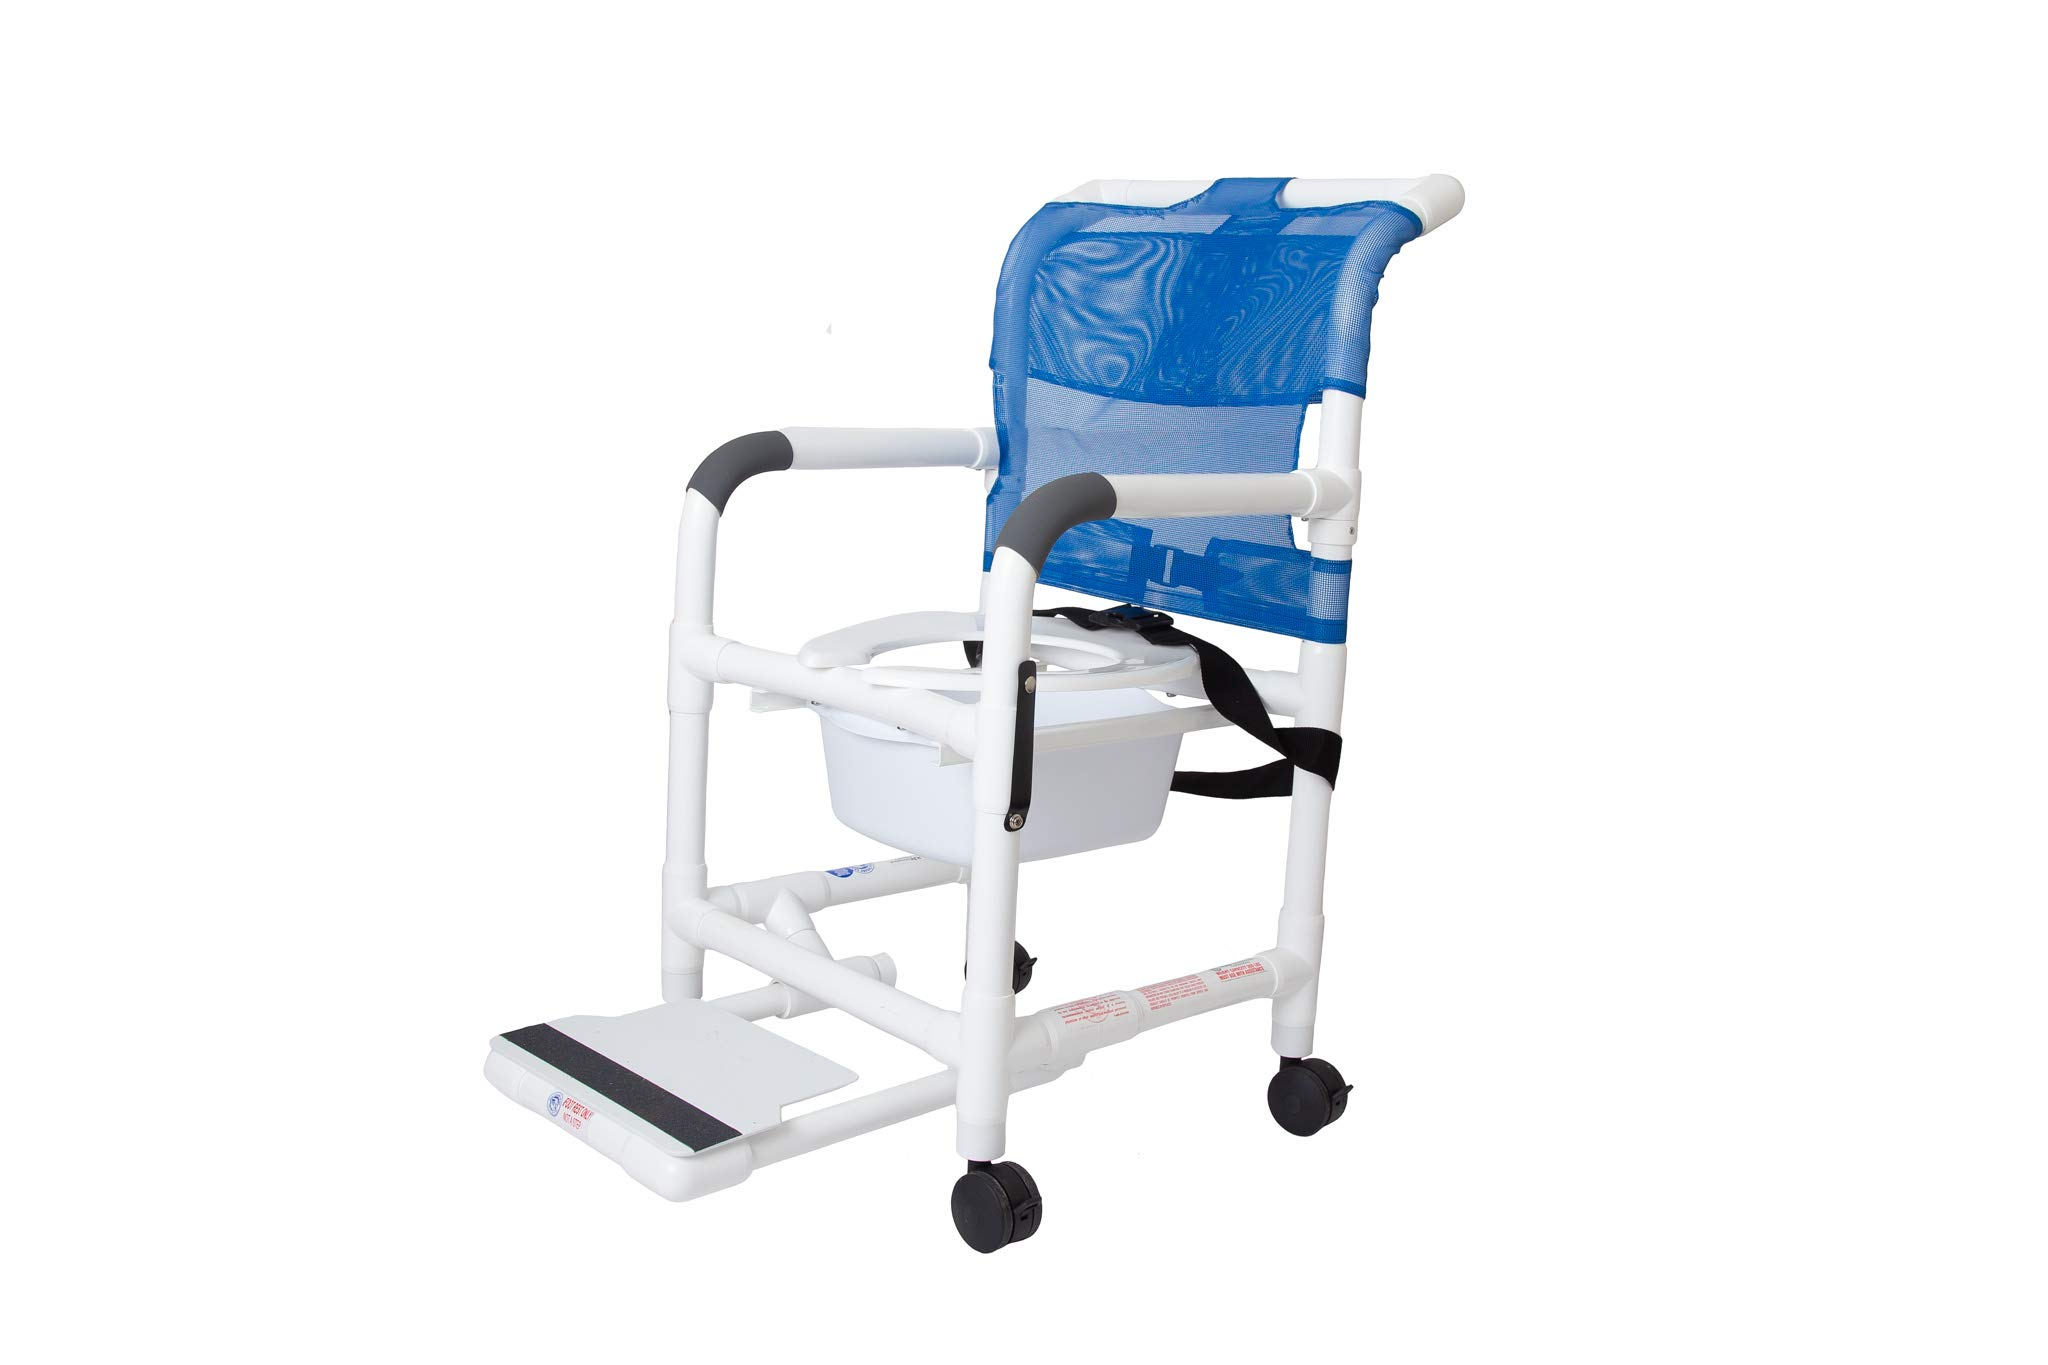 Rolling Shower Chair with Drop Arms, Antimicrobial Mesh Seat, Locking Casters, Seat Belt, Slide Out Footrest and Commode Pail. 300 lb. Capacity, Fits Over Standard Toilet. by Fields Outdoor Supplies